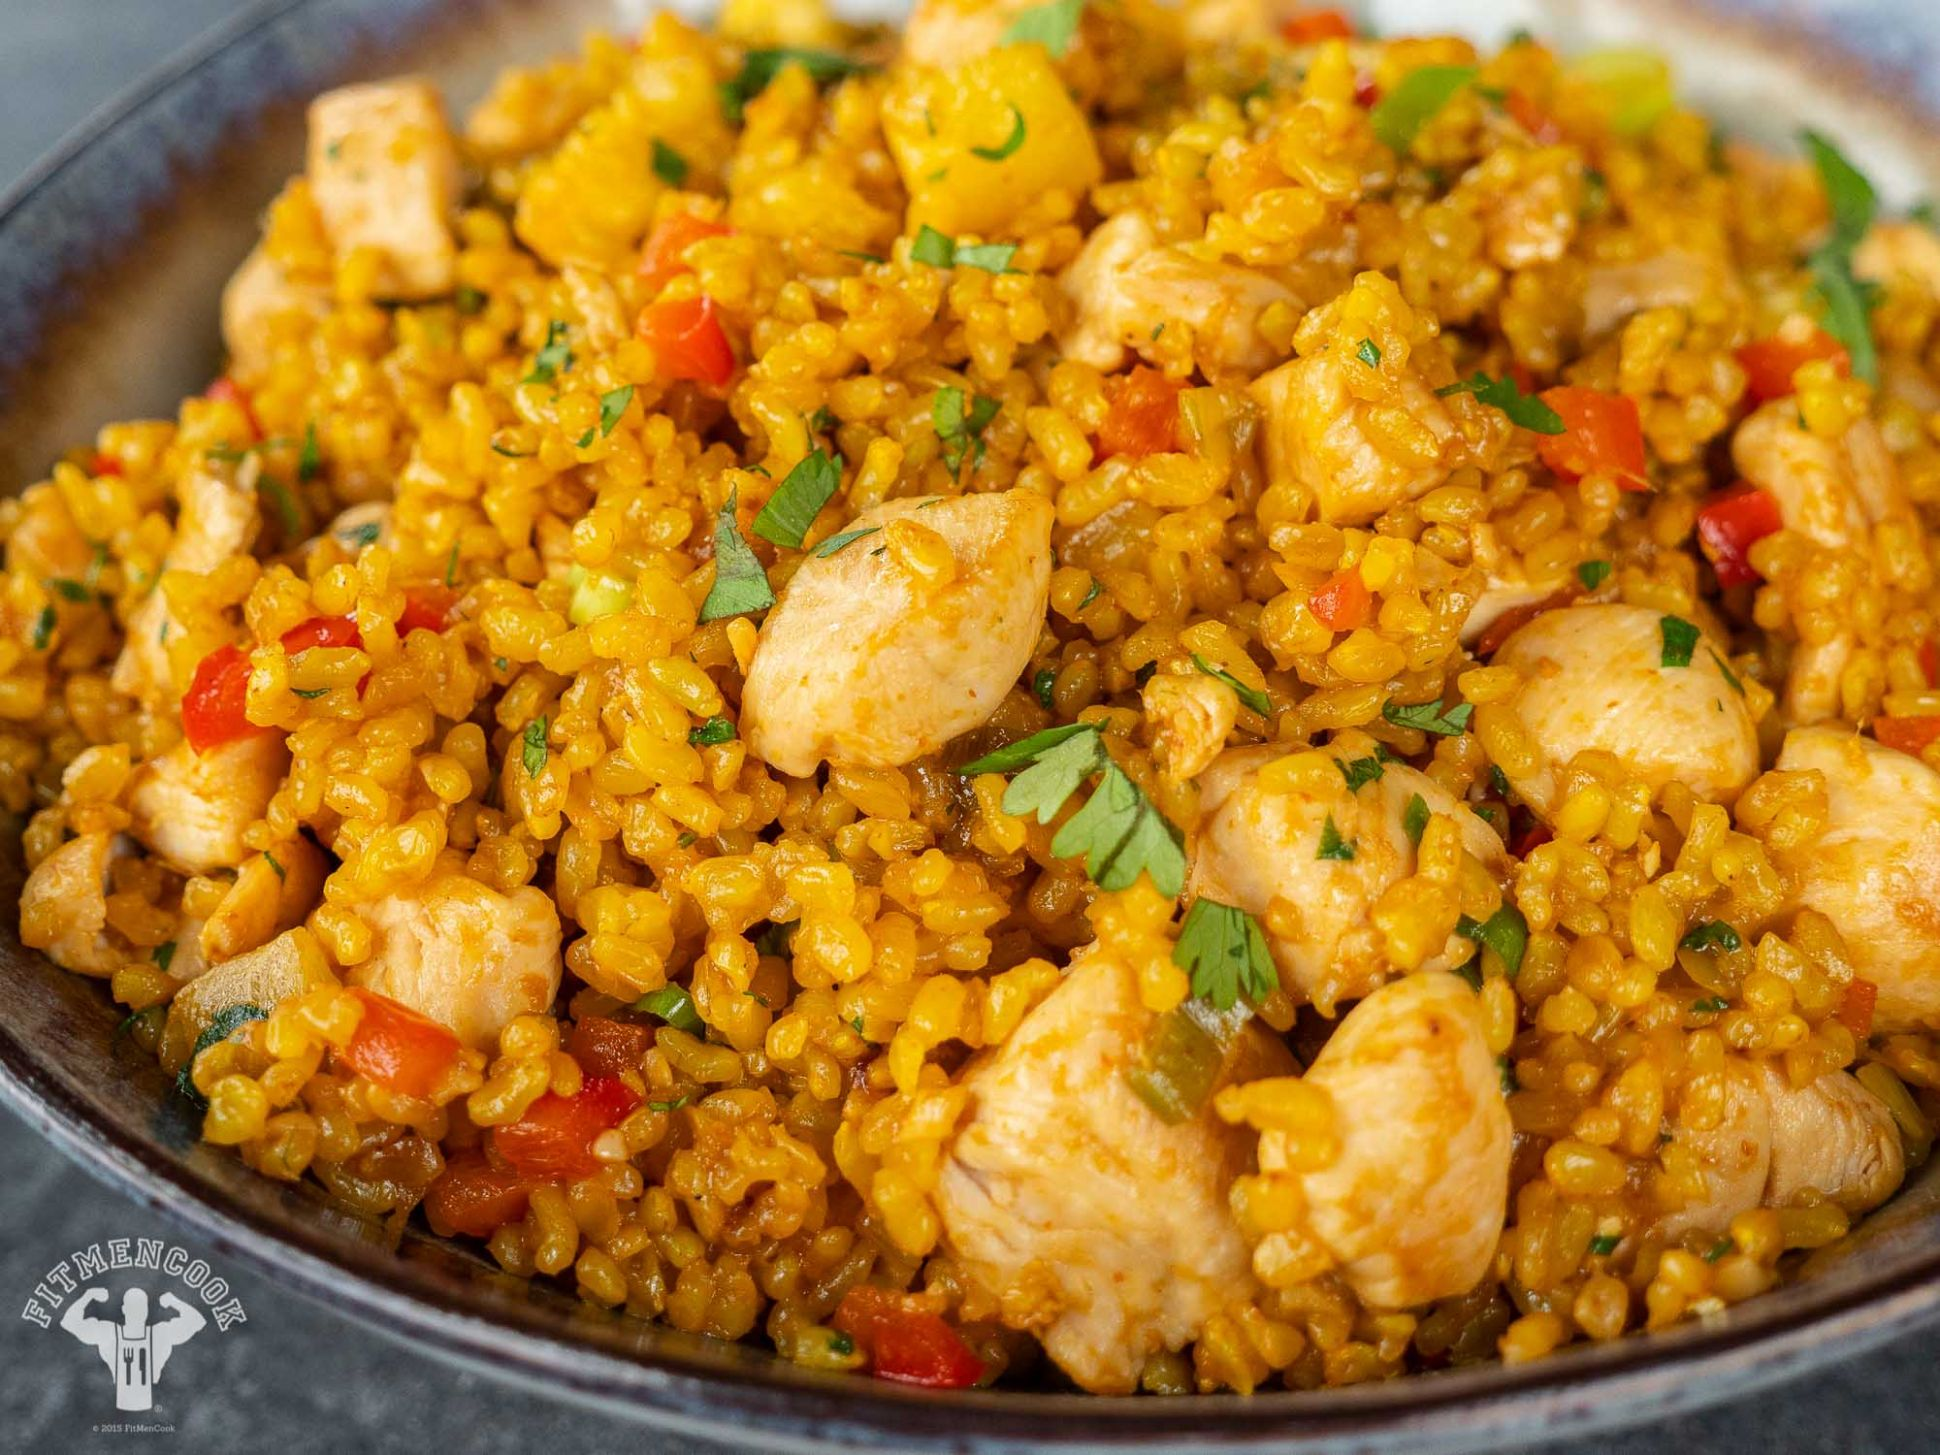 Pineapple Chicken Fried Rice With Turmeric - Fit Men Cook - Recipes Rice With Pineapple